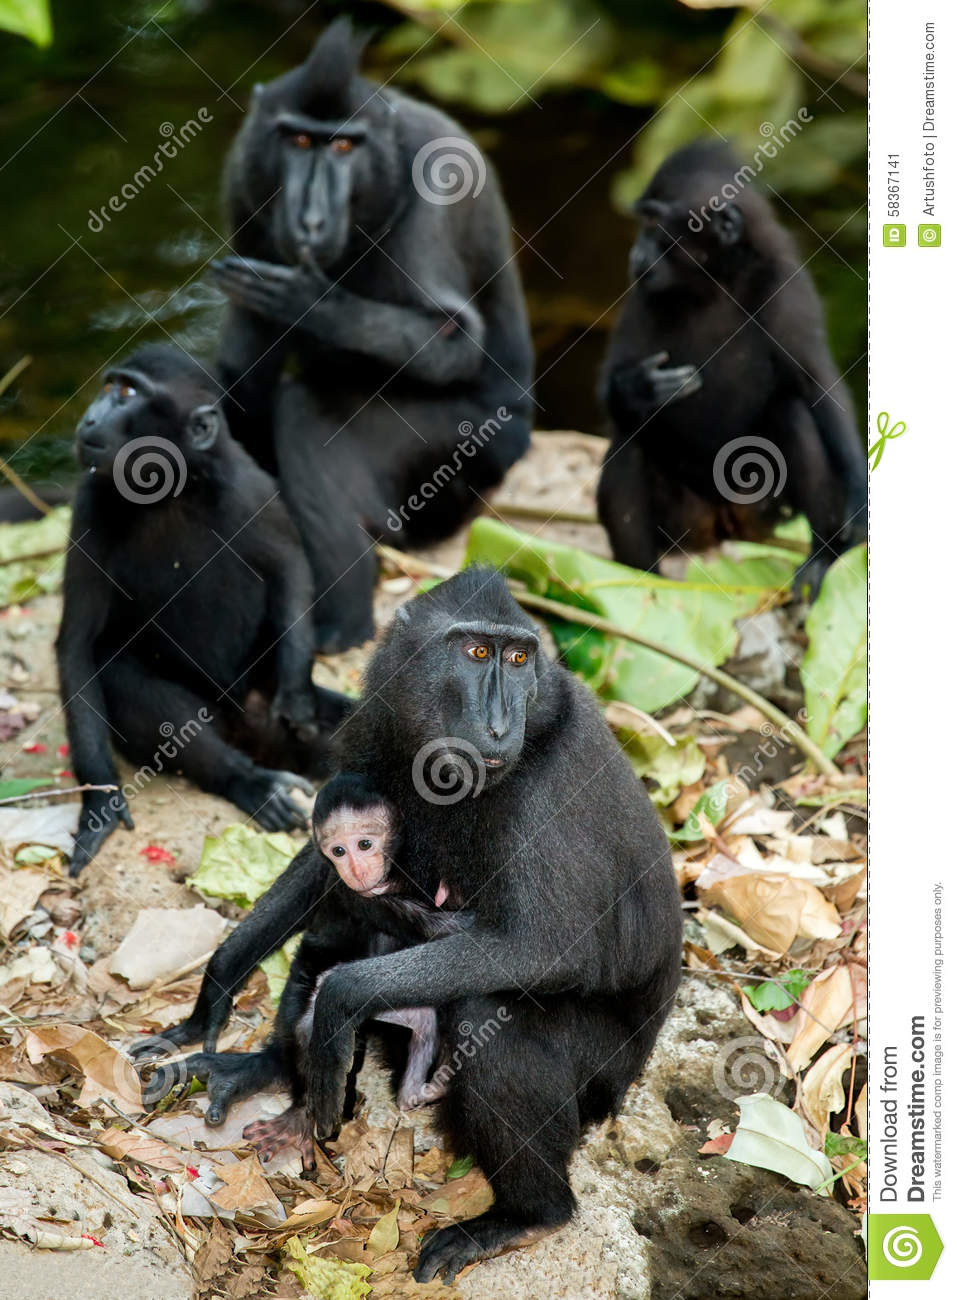 Celebes Crested Macaque clipart #18, Download drawings